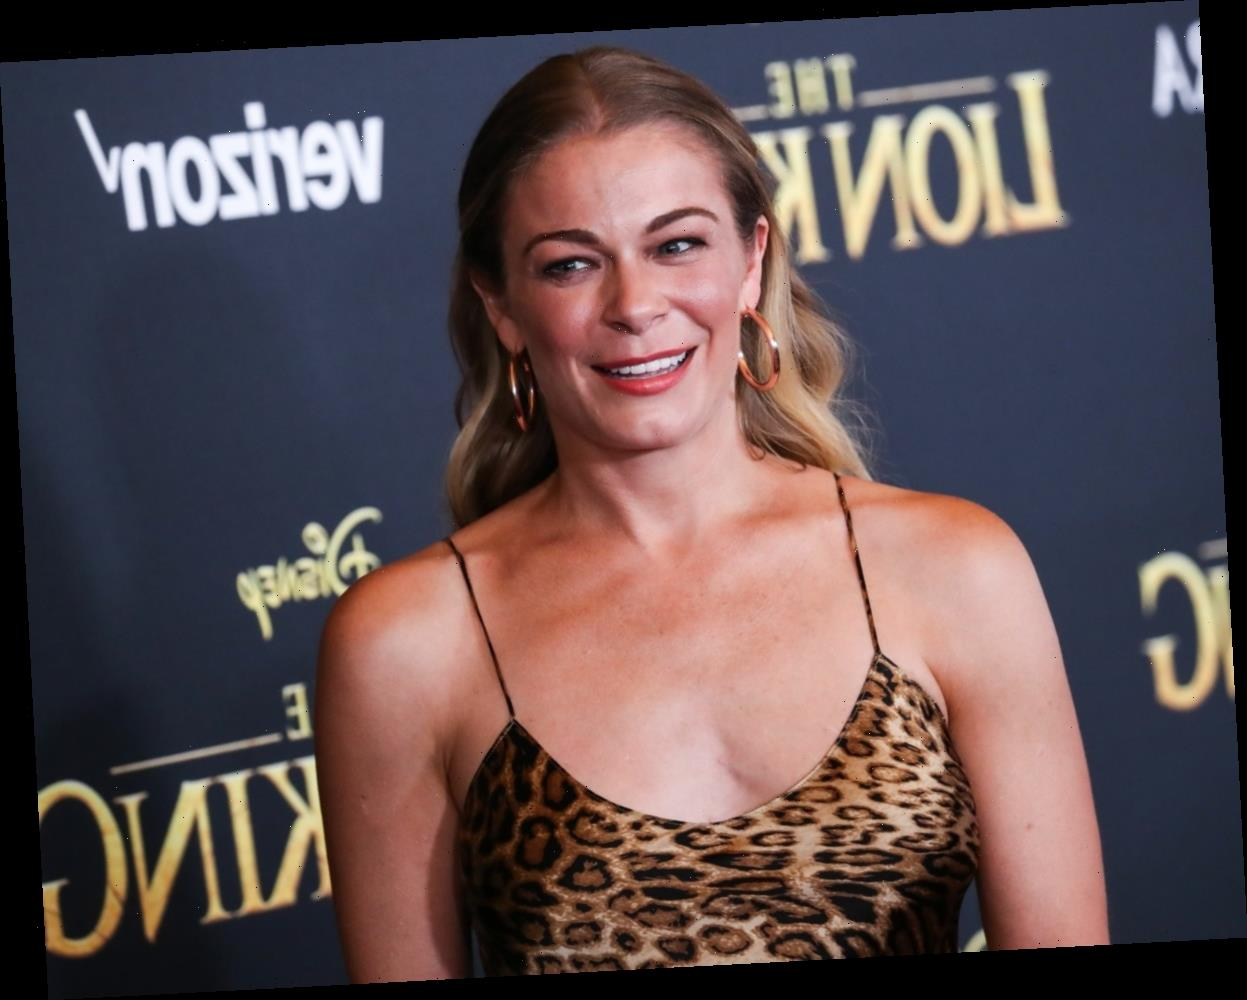 LeAnn Rimes says she was 'running from a lot of trauma' when she sought help in 2012